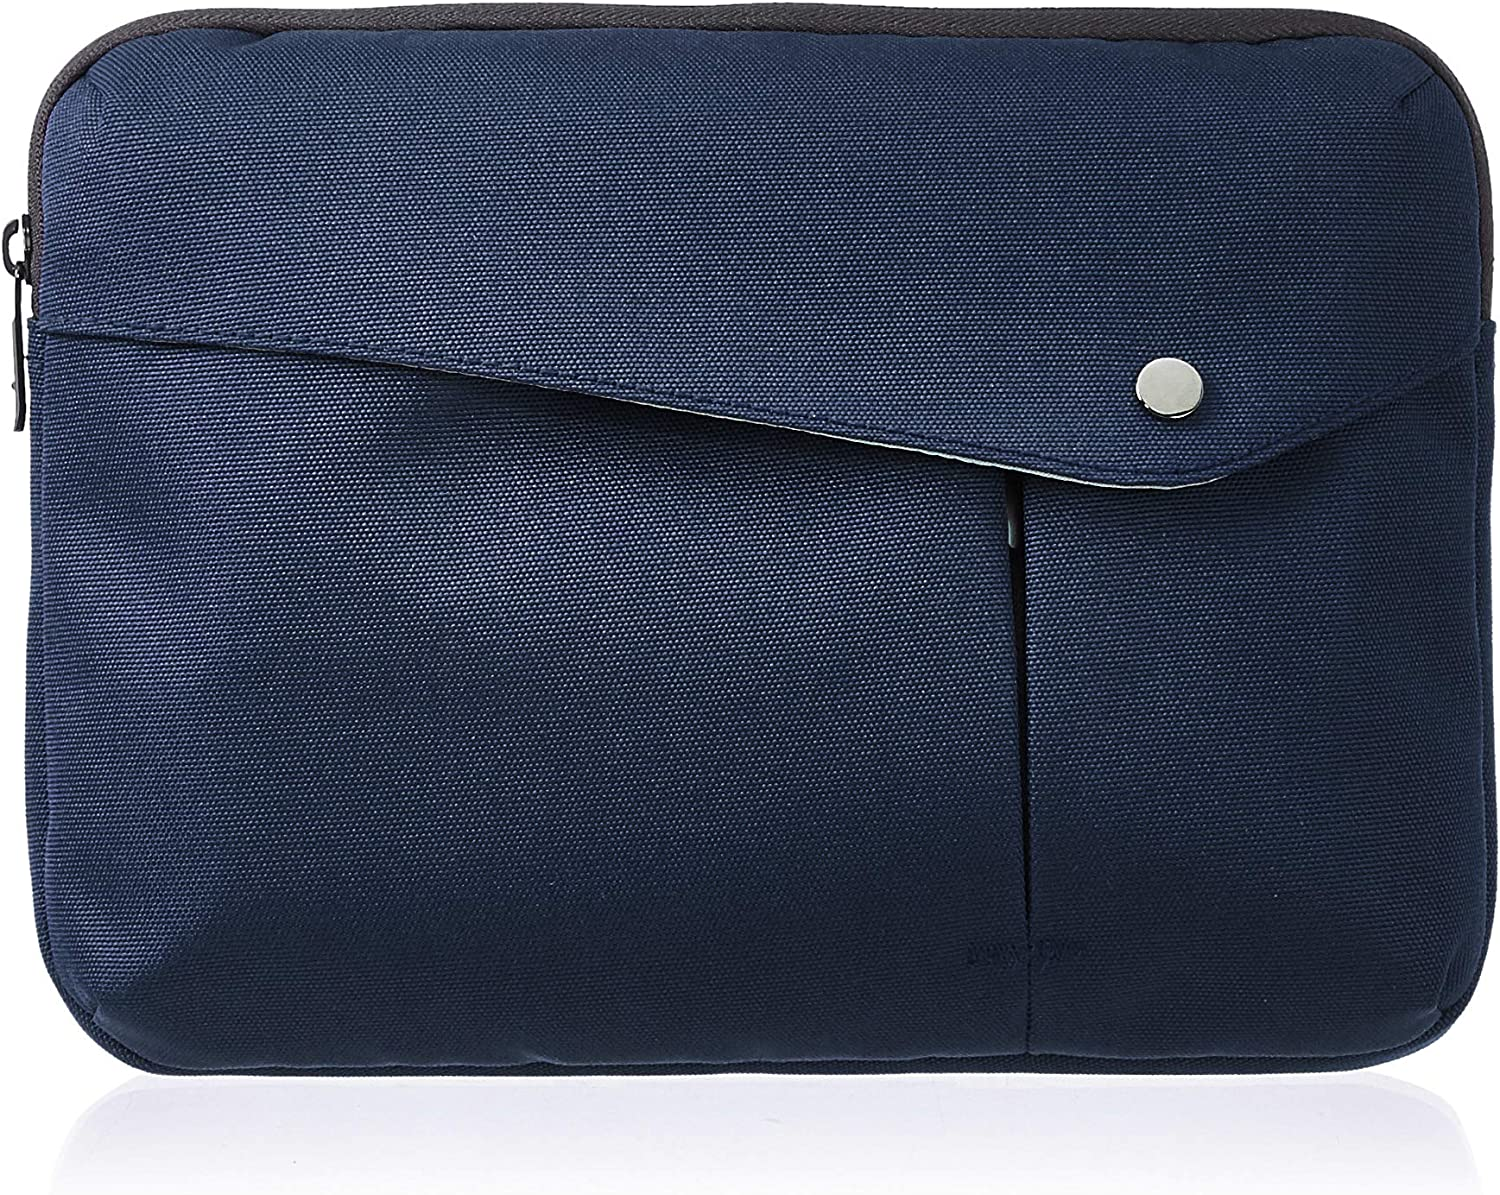 AmazonBasics Laptop Sleeve - 10-Inch, Navy